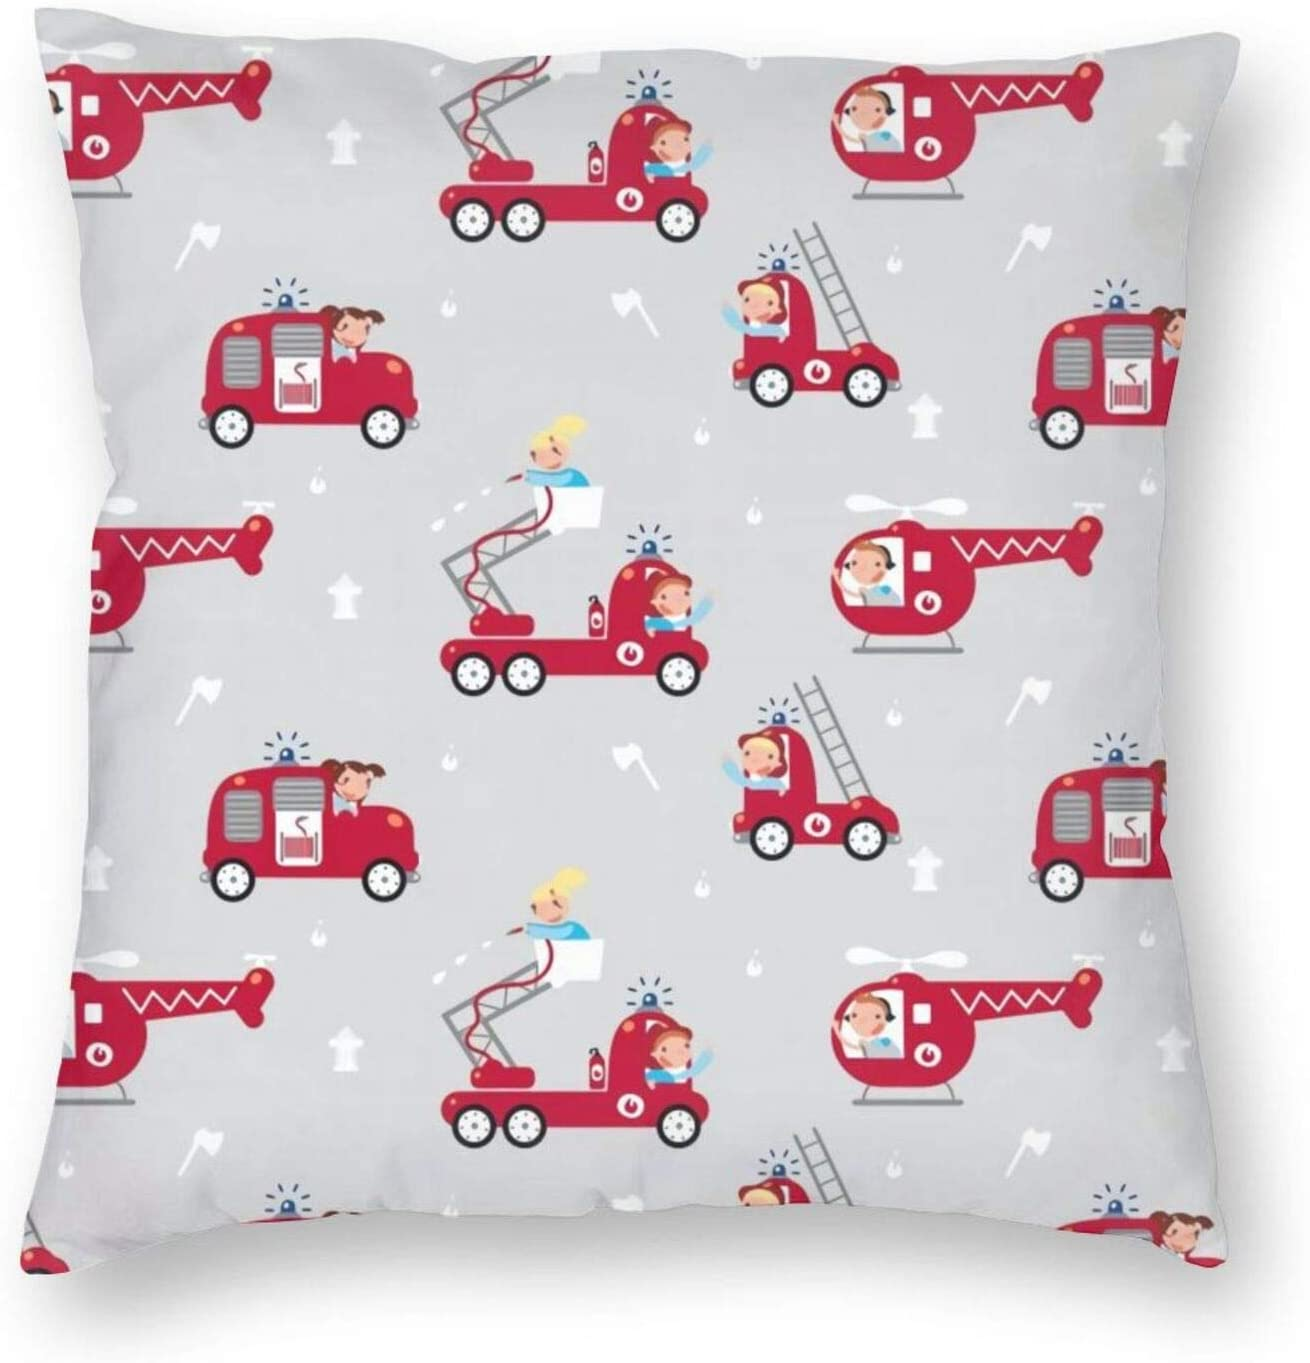 Firemen, On The Roll! (Trucks) Pillow Covers Decorative Couch Pillow Cases Pillow Square Cushion Cover for Sofa, Couch, Bed and Car